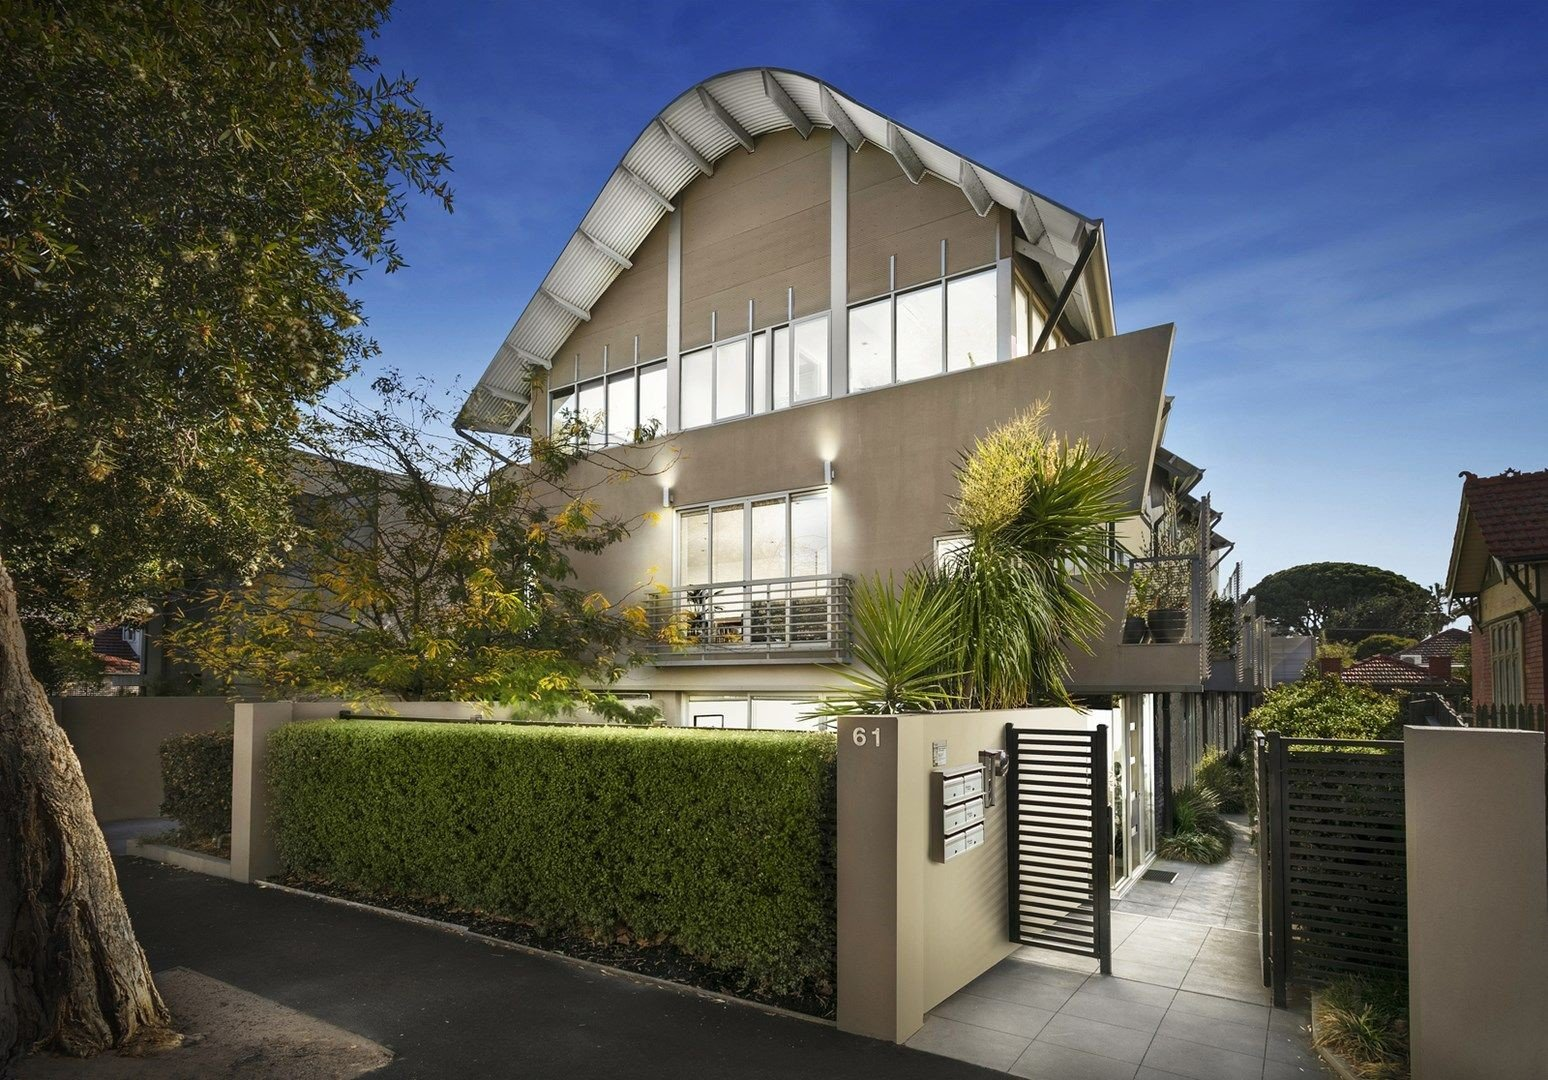 Peter V. - Committee Member, Glenferrie Road, Hawthorn – Melbourne, Victoria 3183